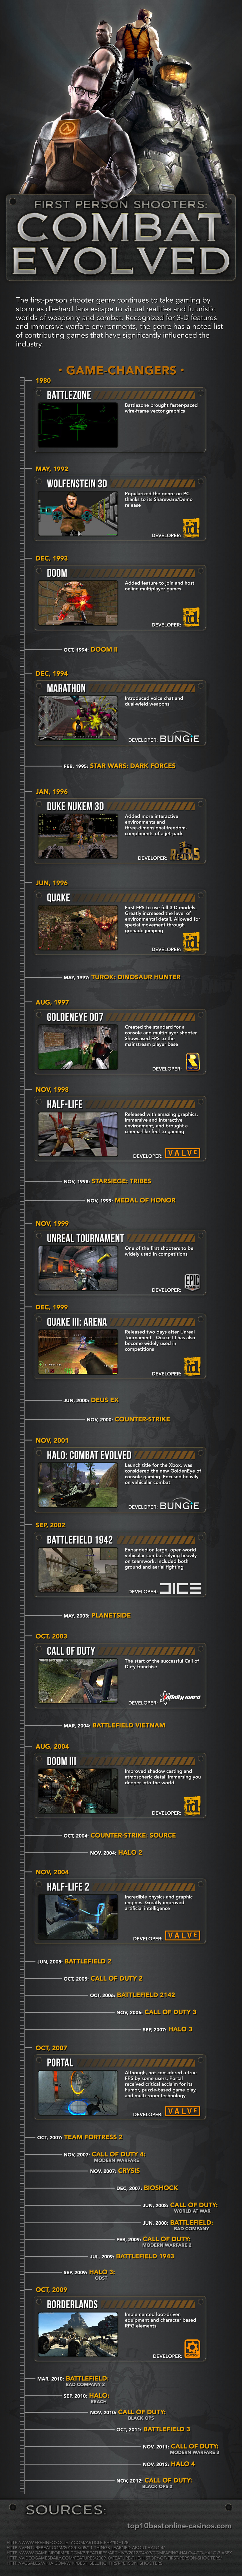 First Person Shooters: Combat Evolved Infographic